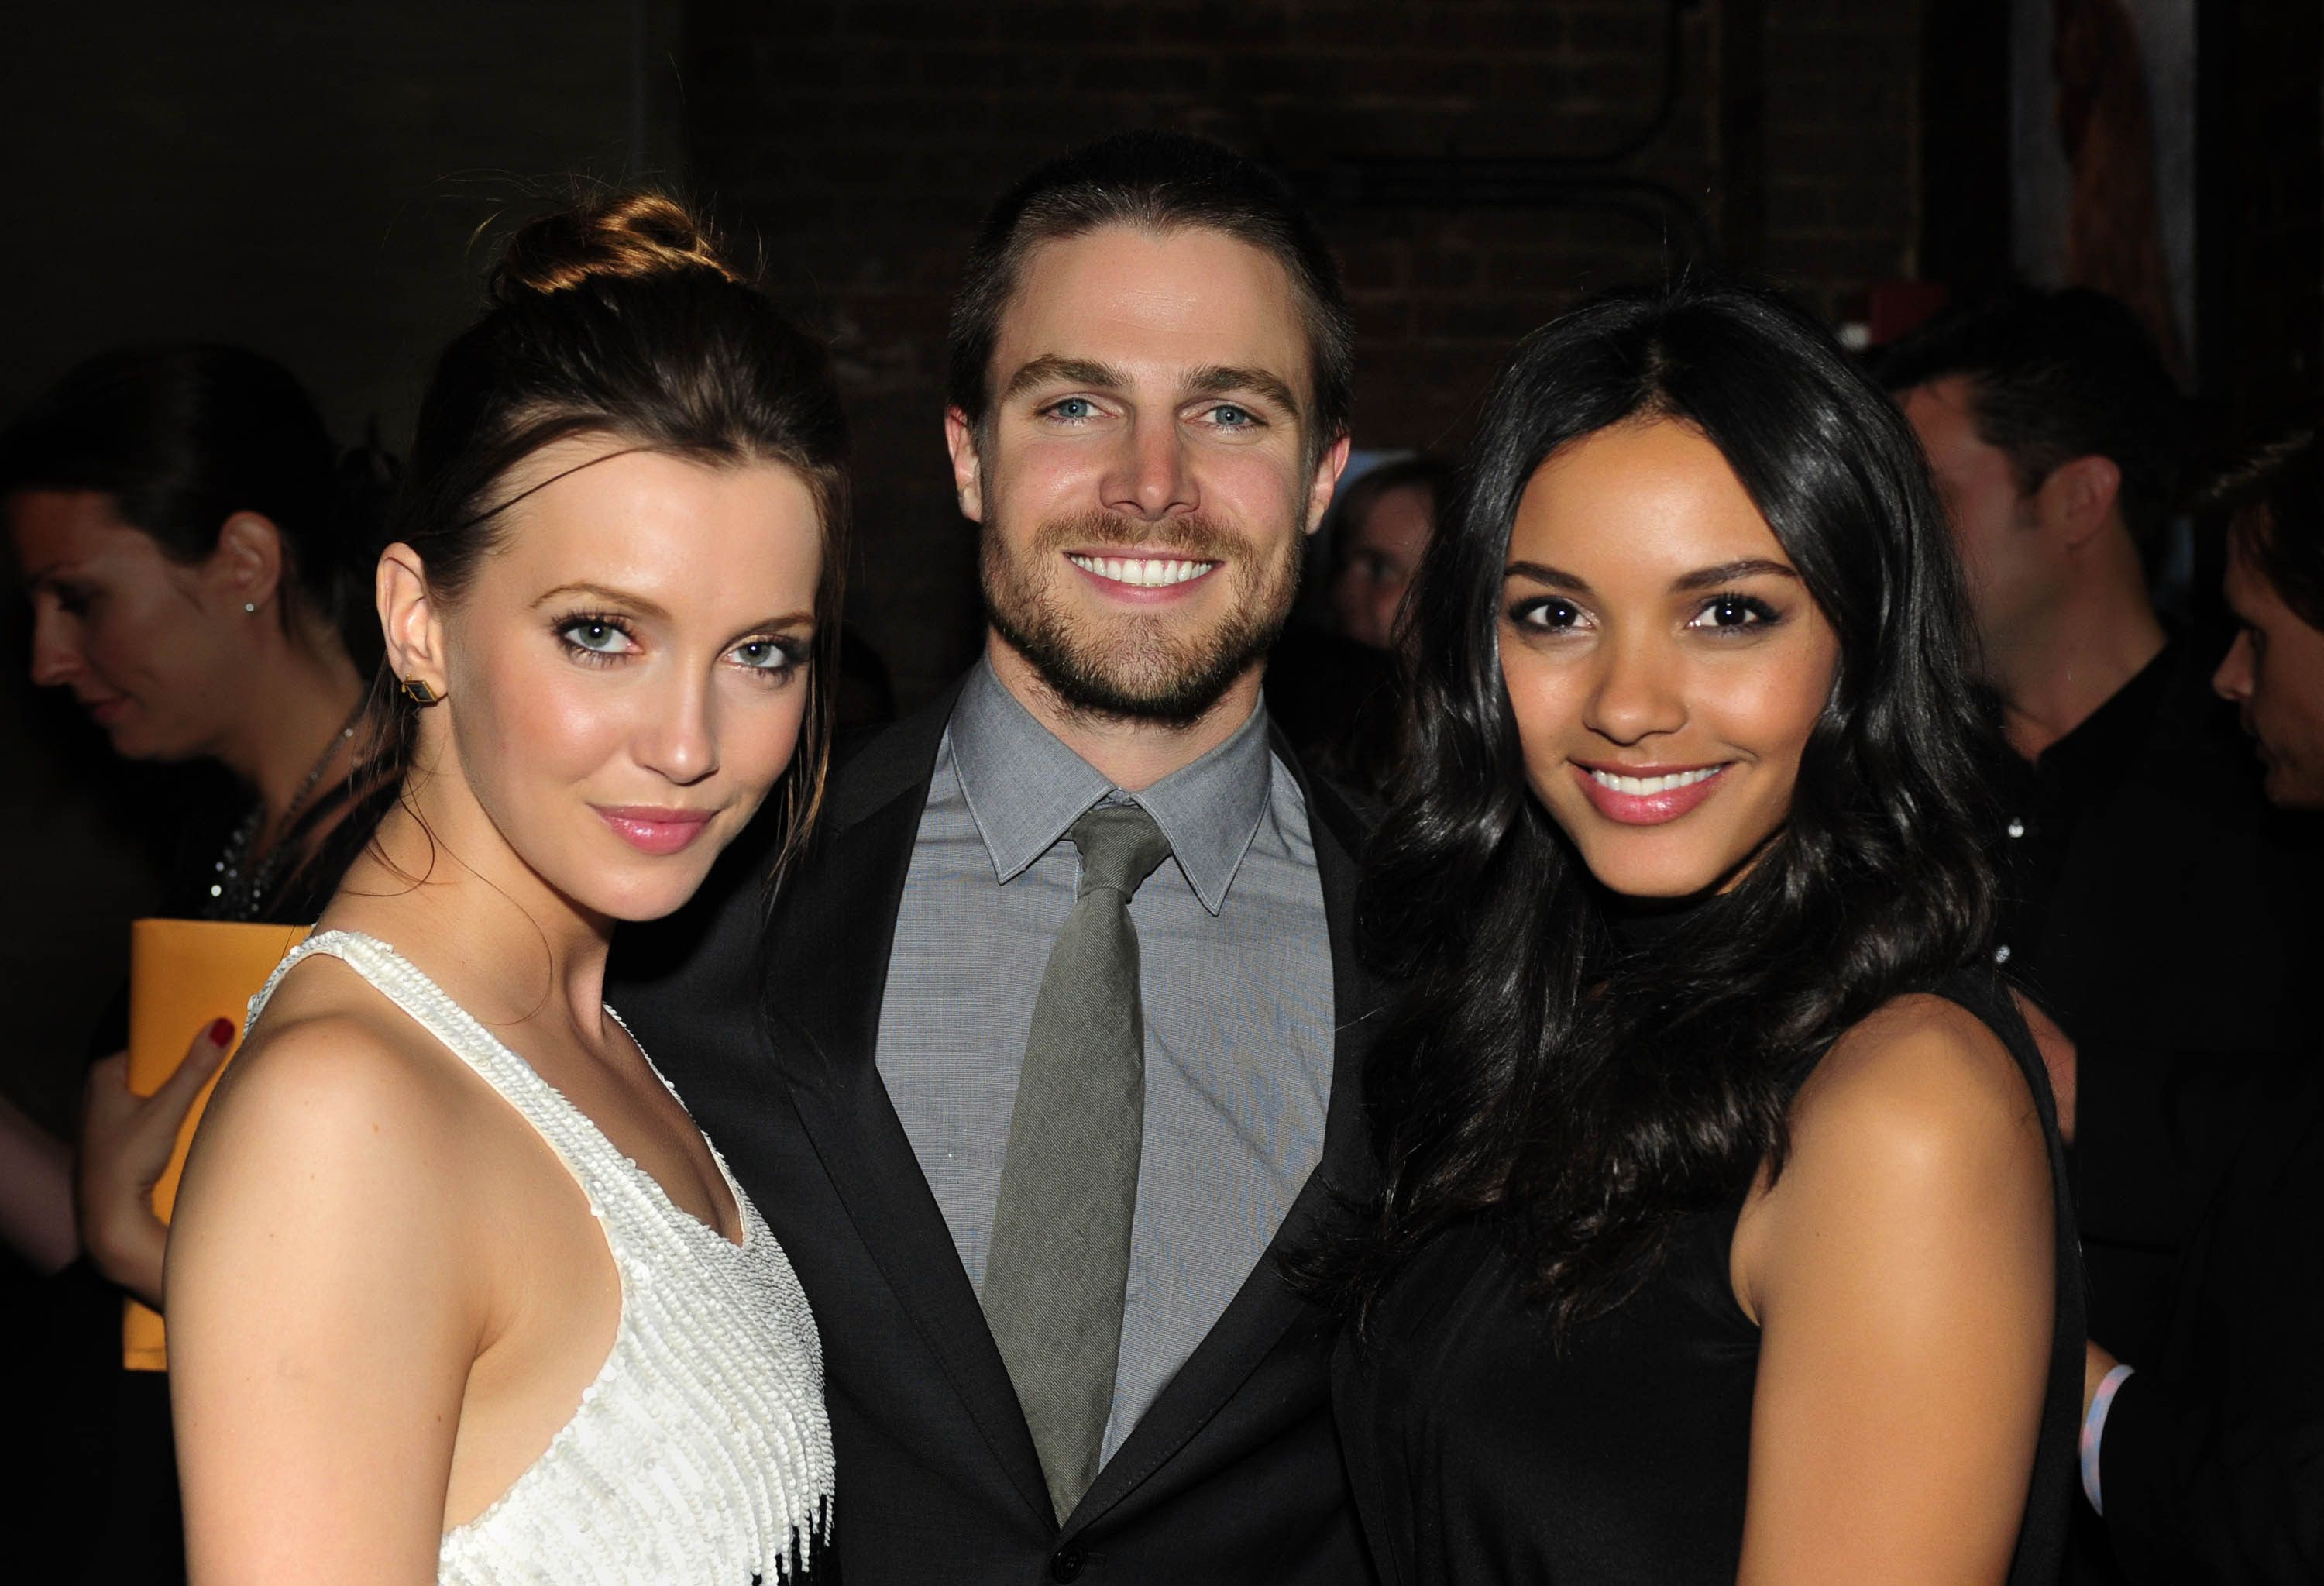 Katie Cassidy and Stephen Amell (ARROW) and Jessica Lucas (CULT) at The CW Upfront Party - Colicchio  Sons, New York, Thursday, May 17, 2012. Photo: Timothy Kuratek/CW 2012 CW Broadcasting Inc. All Rights Reserved.#Repin By:Pinterest++ for iPad#